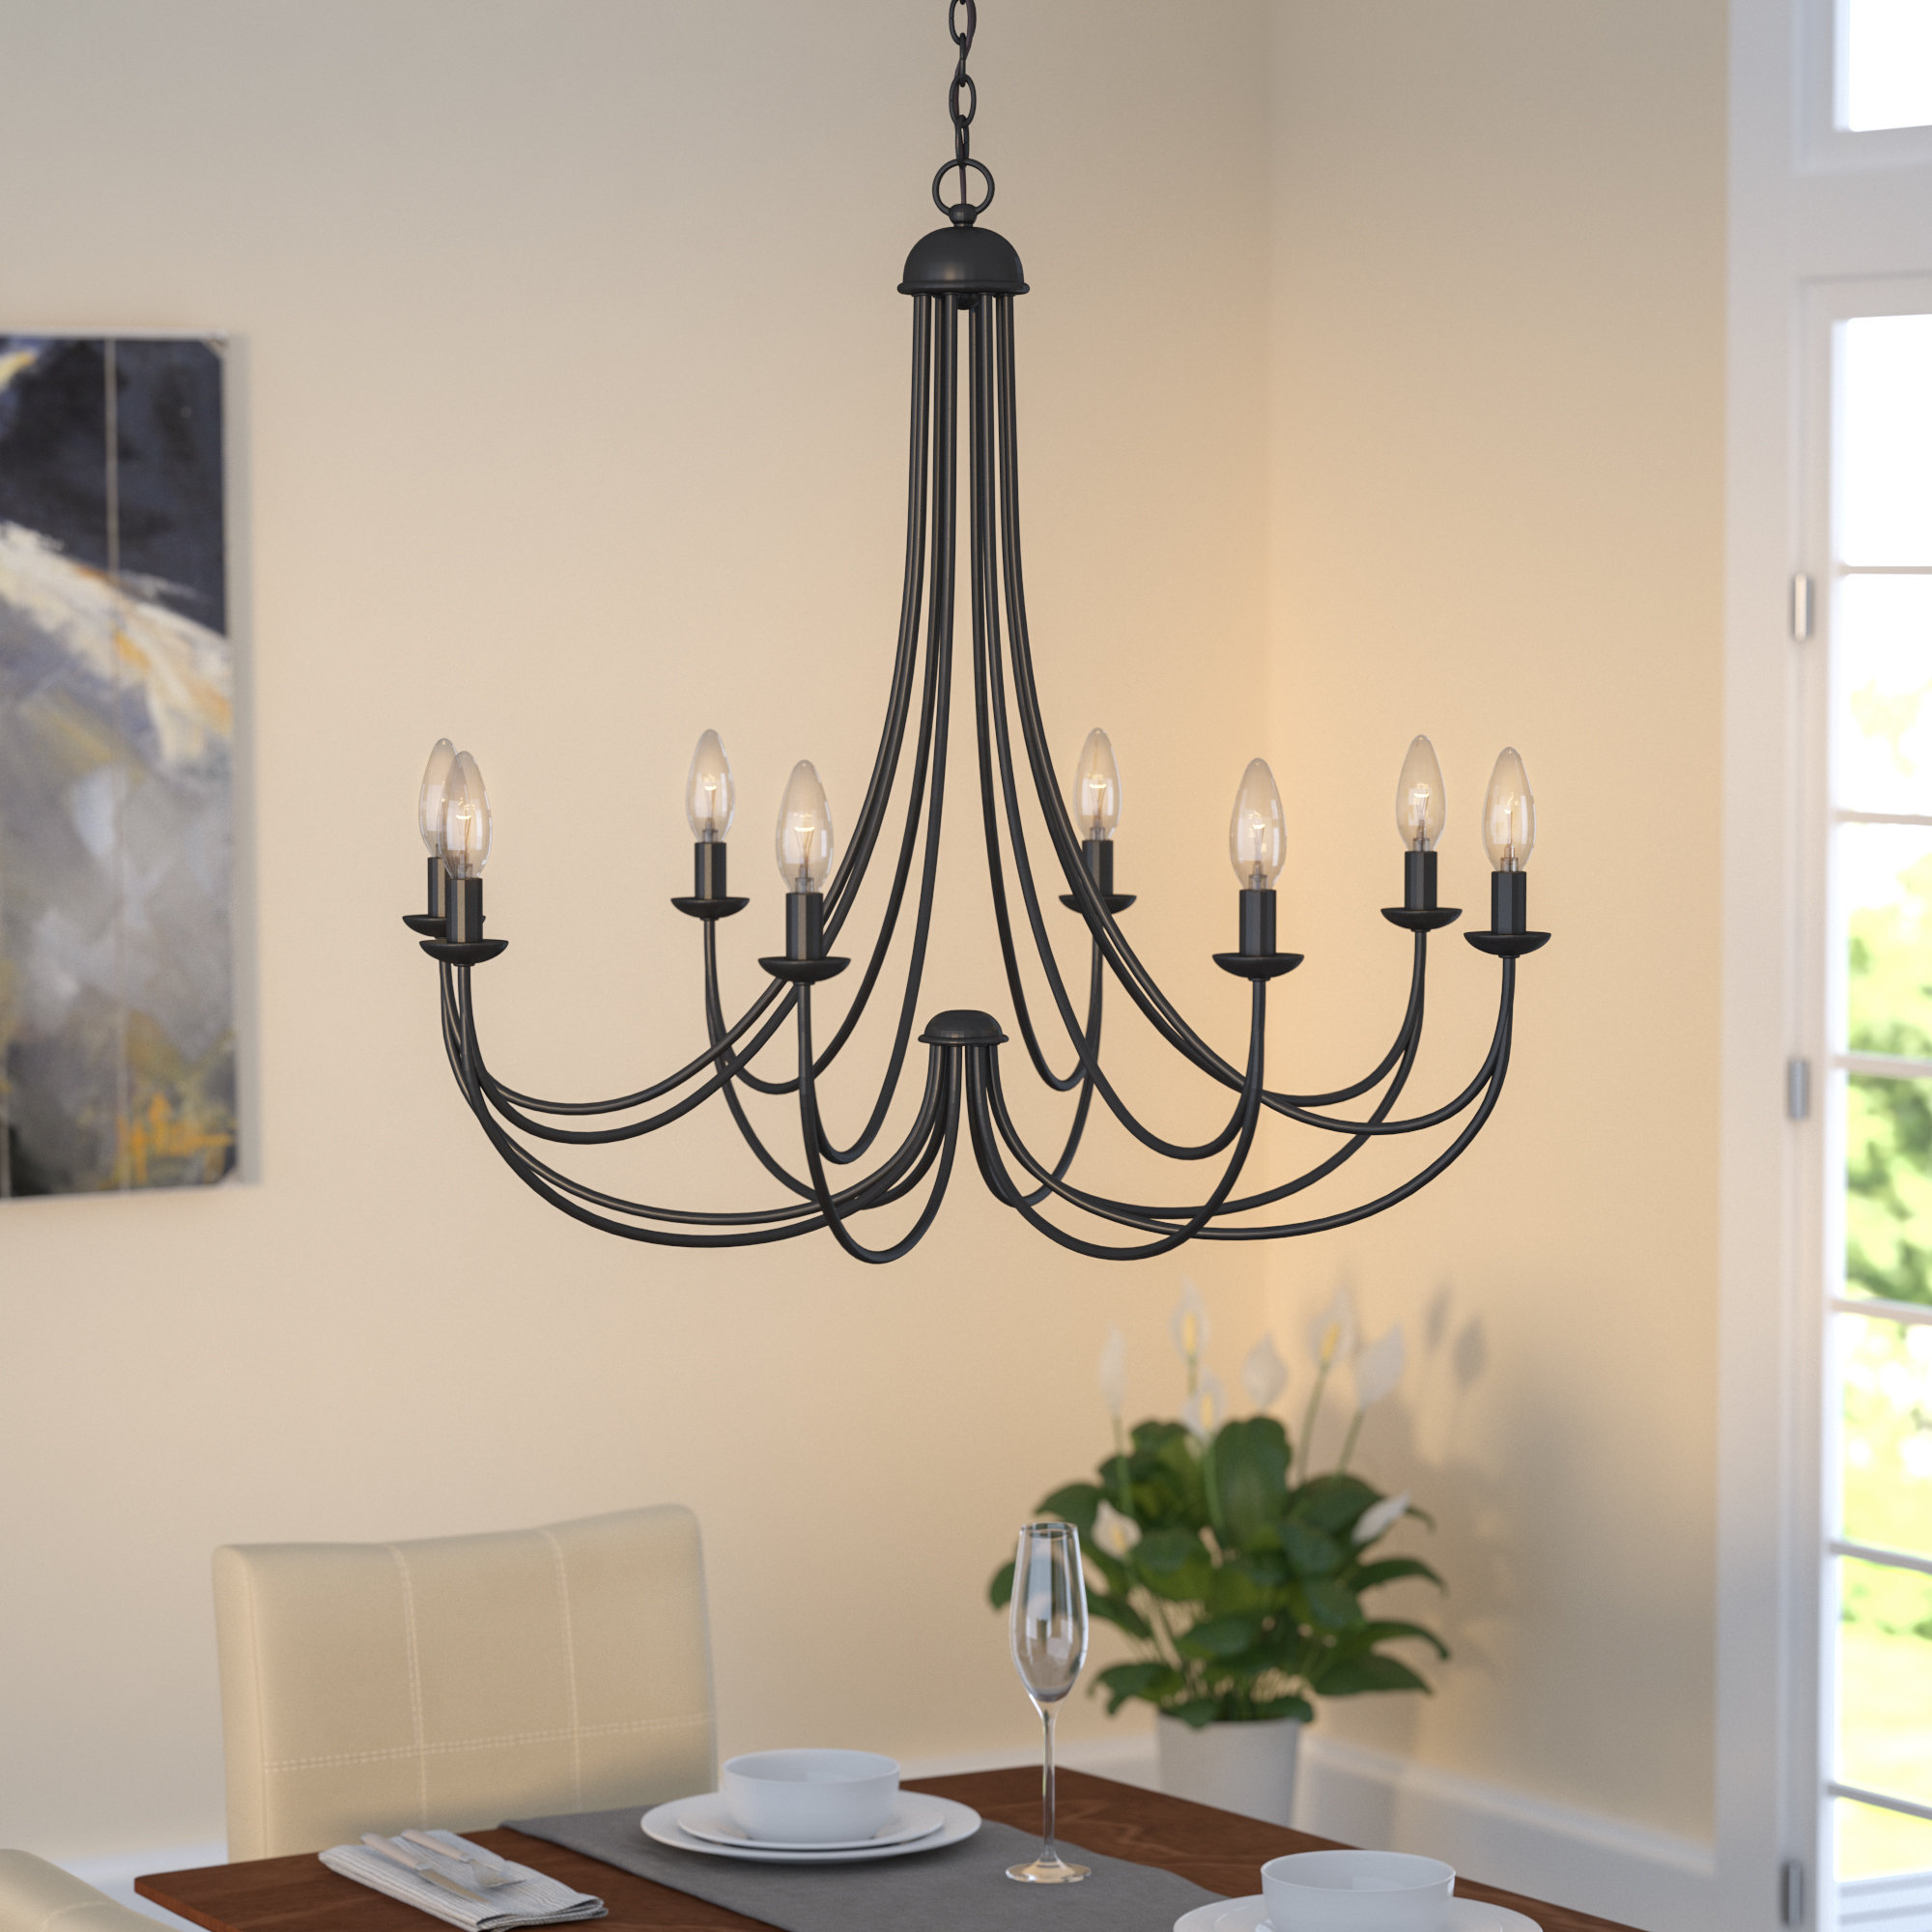 Emilia 8-Light Candle-Style Chandelier pertaining to Watford 9-Light Candle Style Chandeliers (Image 10 of 30)